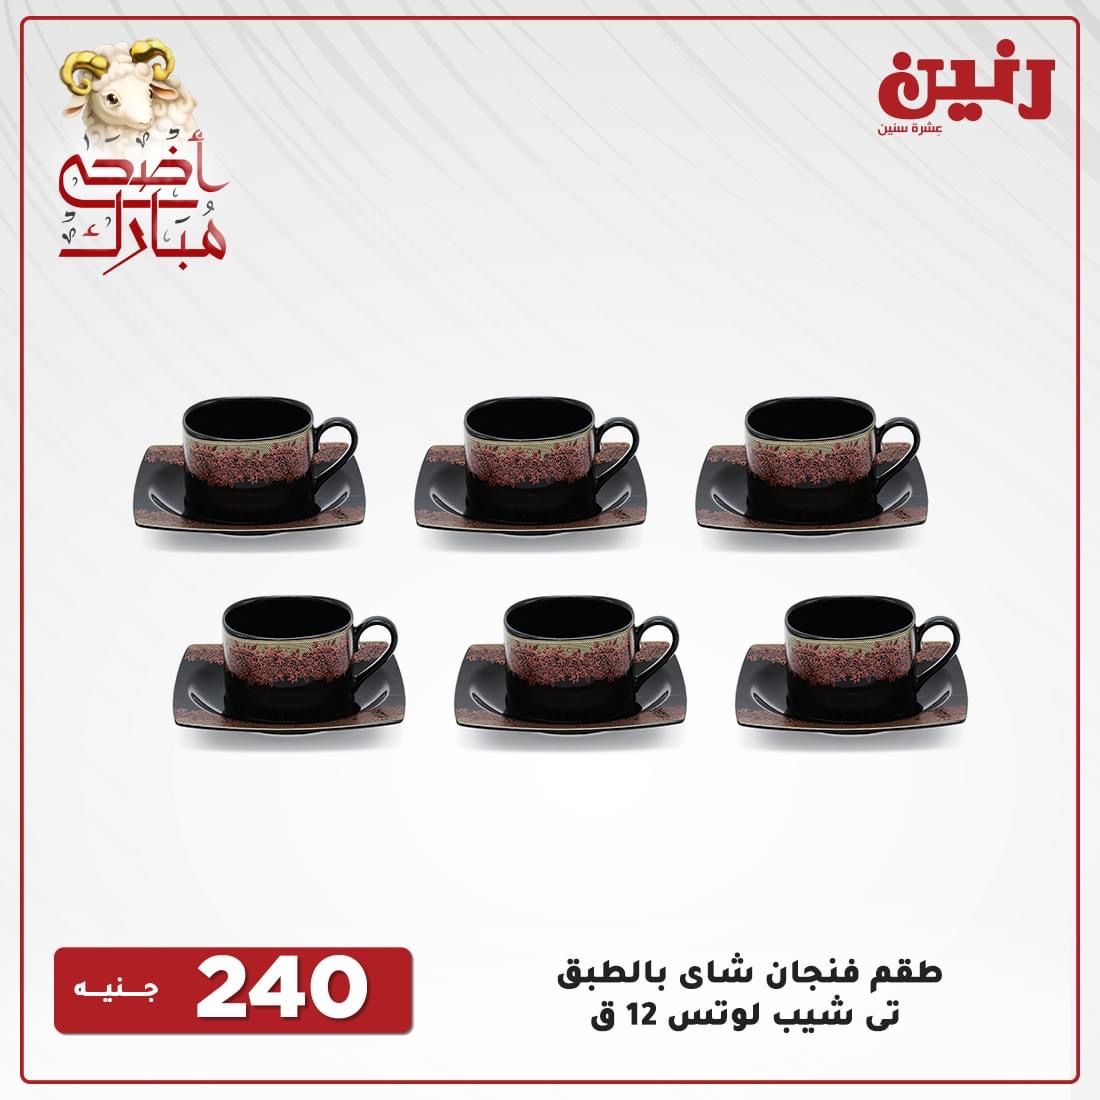 Raneen offers today for appliances and household appliances from 22 to 24 July 2021 14